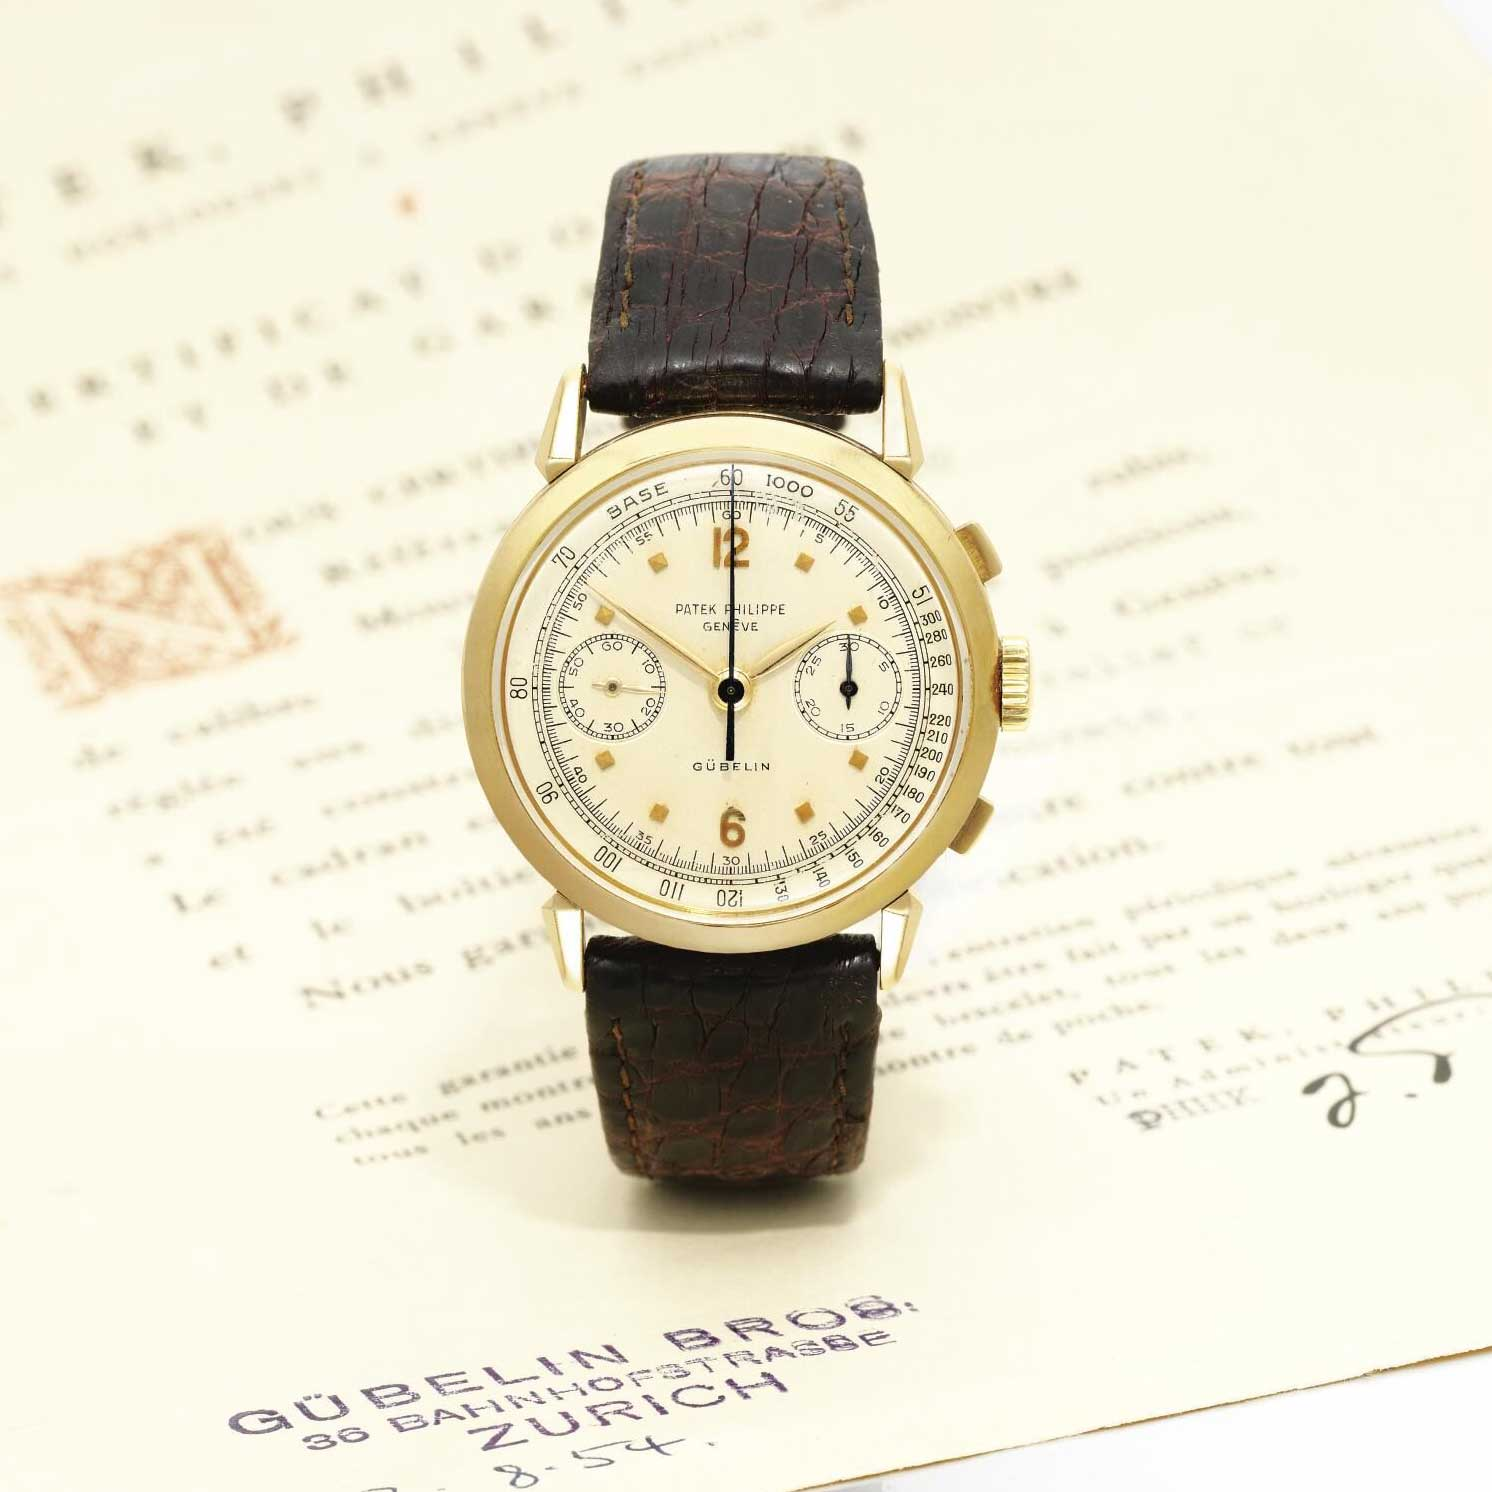 1953 Patek Philippe ref. 1579 yellow gold chronograph with silvered dial, applied gold faceted square and Arabic numerals, retailed by Gübelin (Image: Sothebys.com)